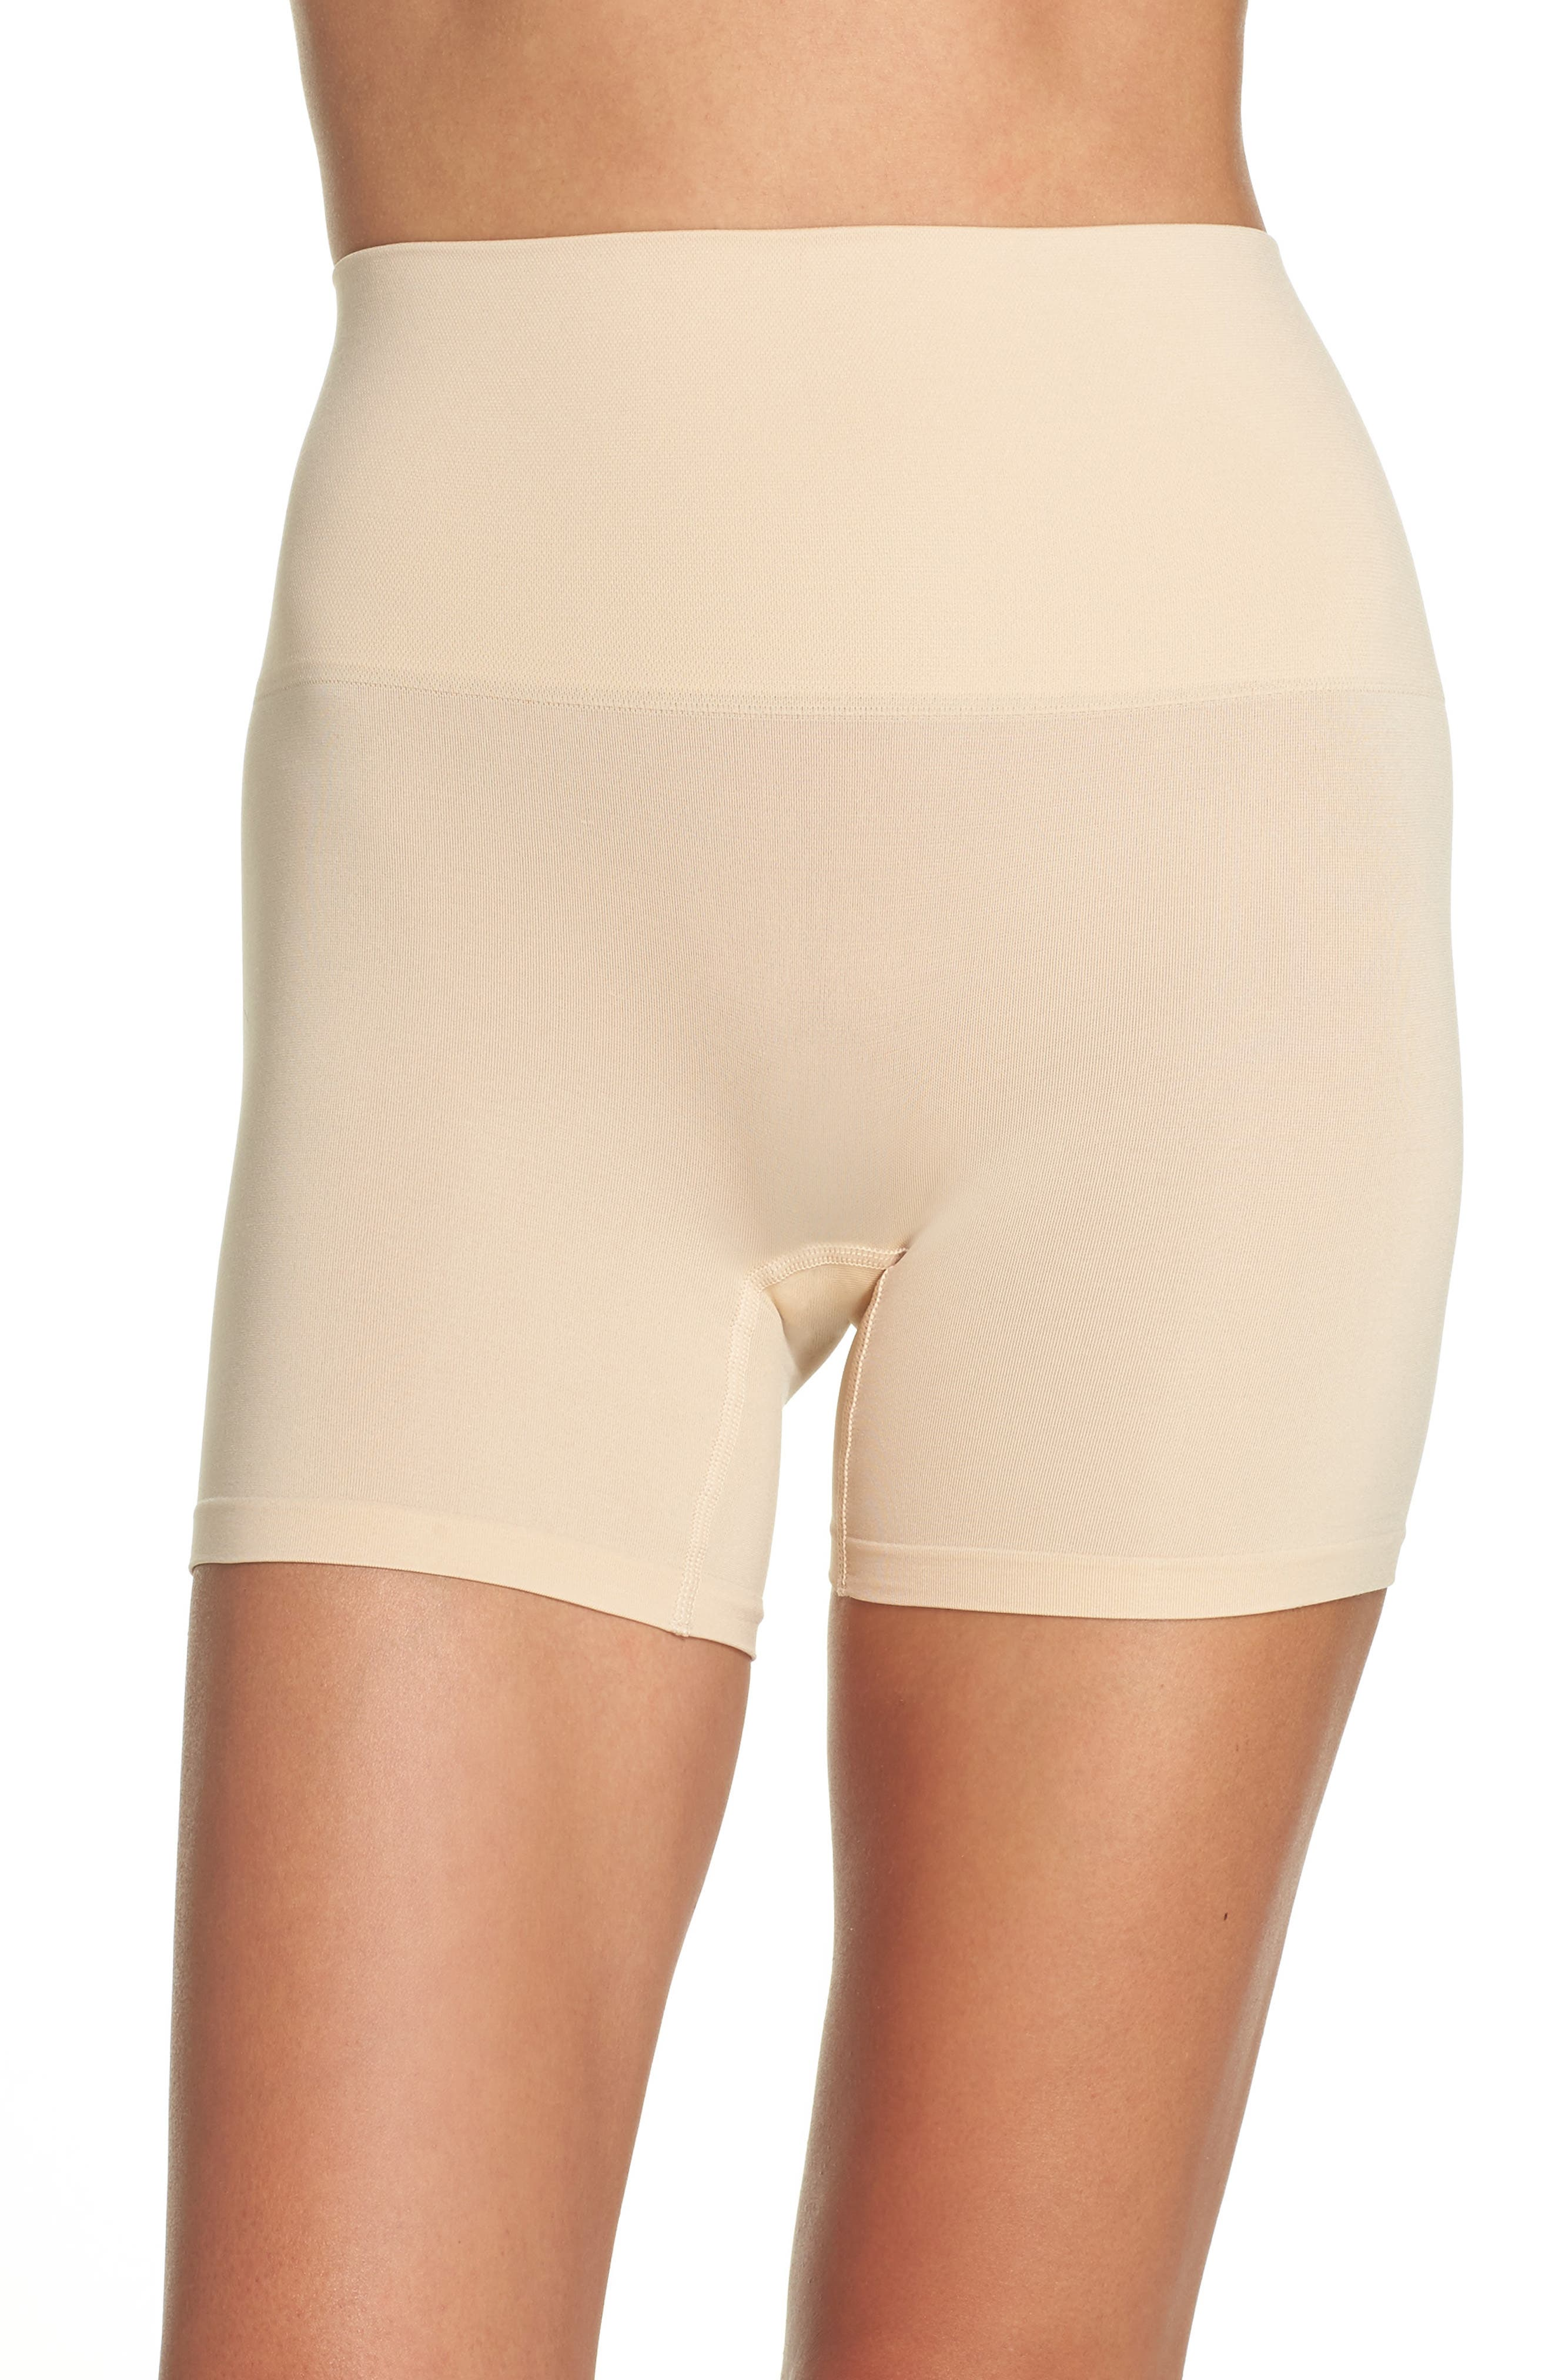 Yummie Ultralight Seamless Shaping Shorts (2 for $30)